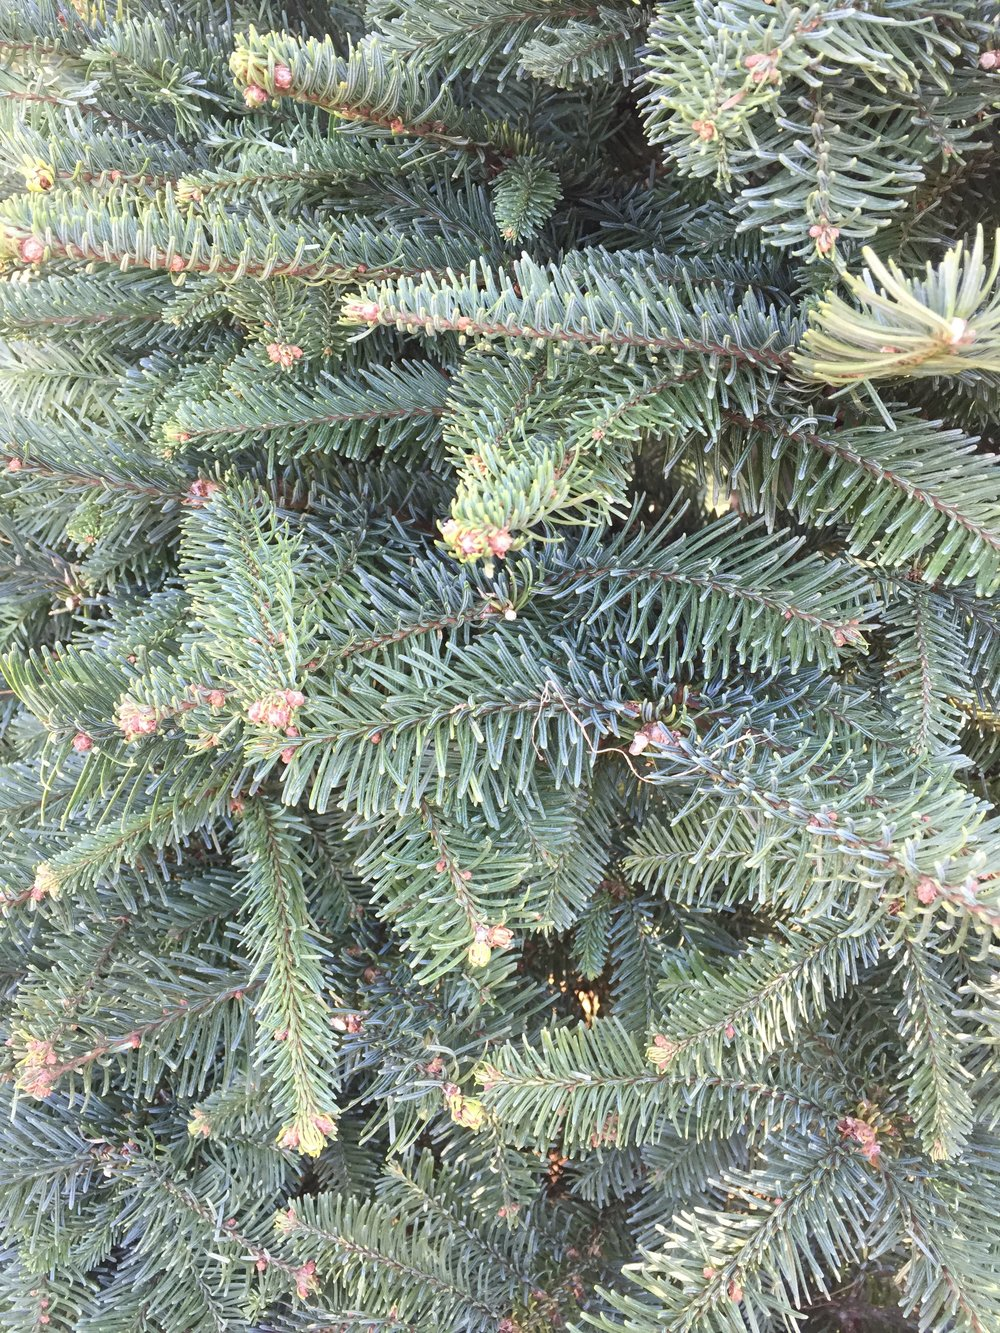 fraser-fir-tree-close-up.jpg